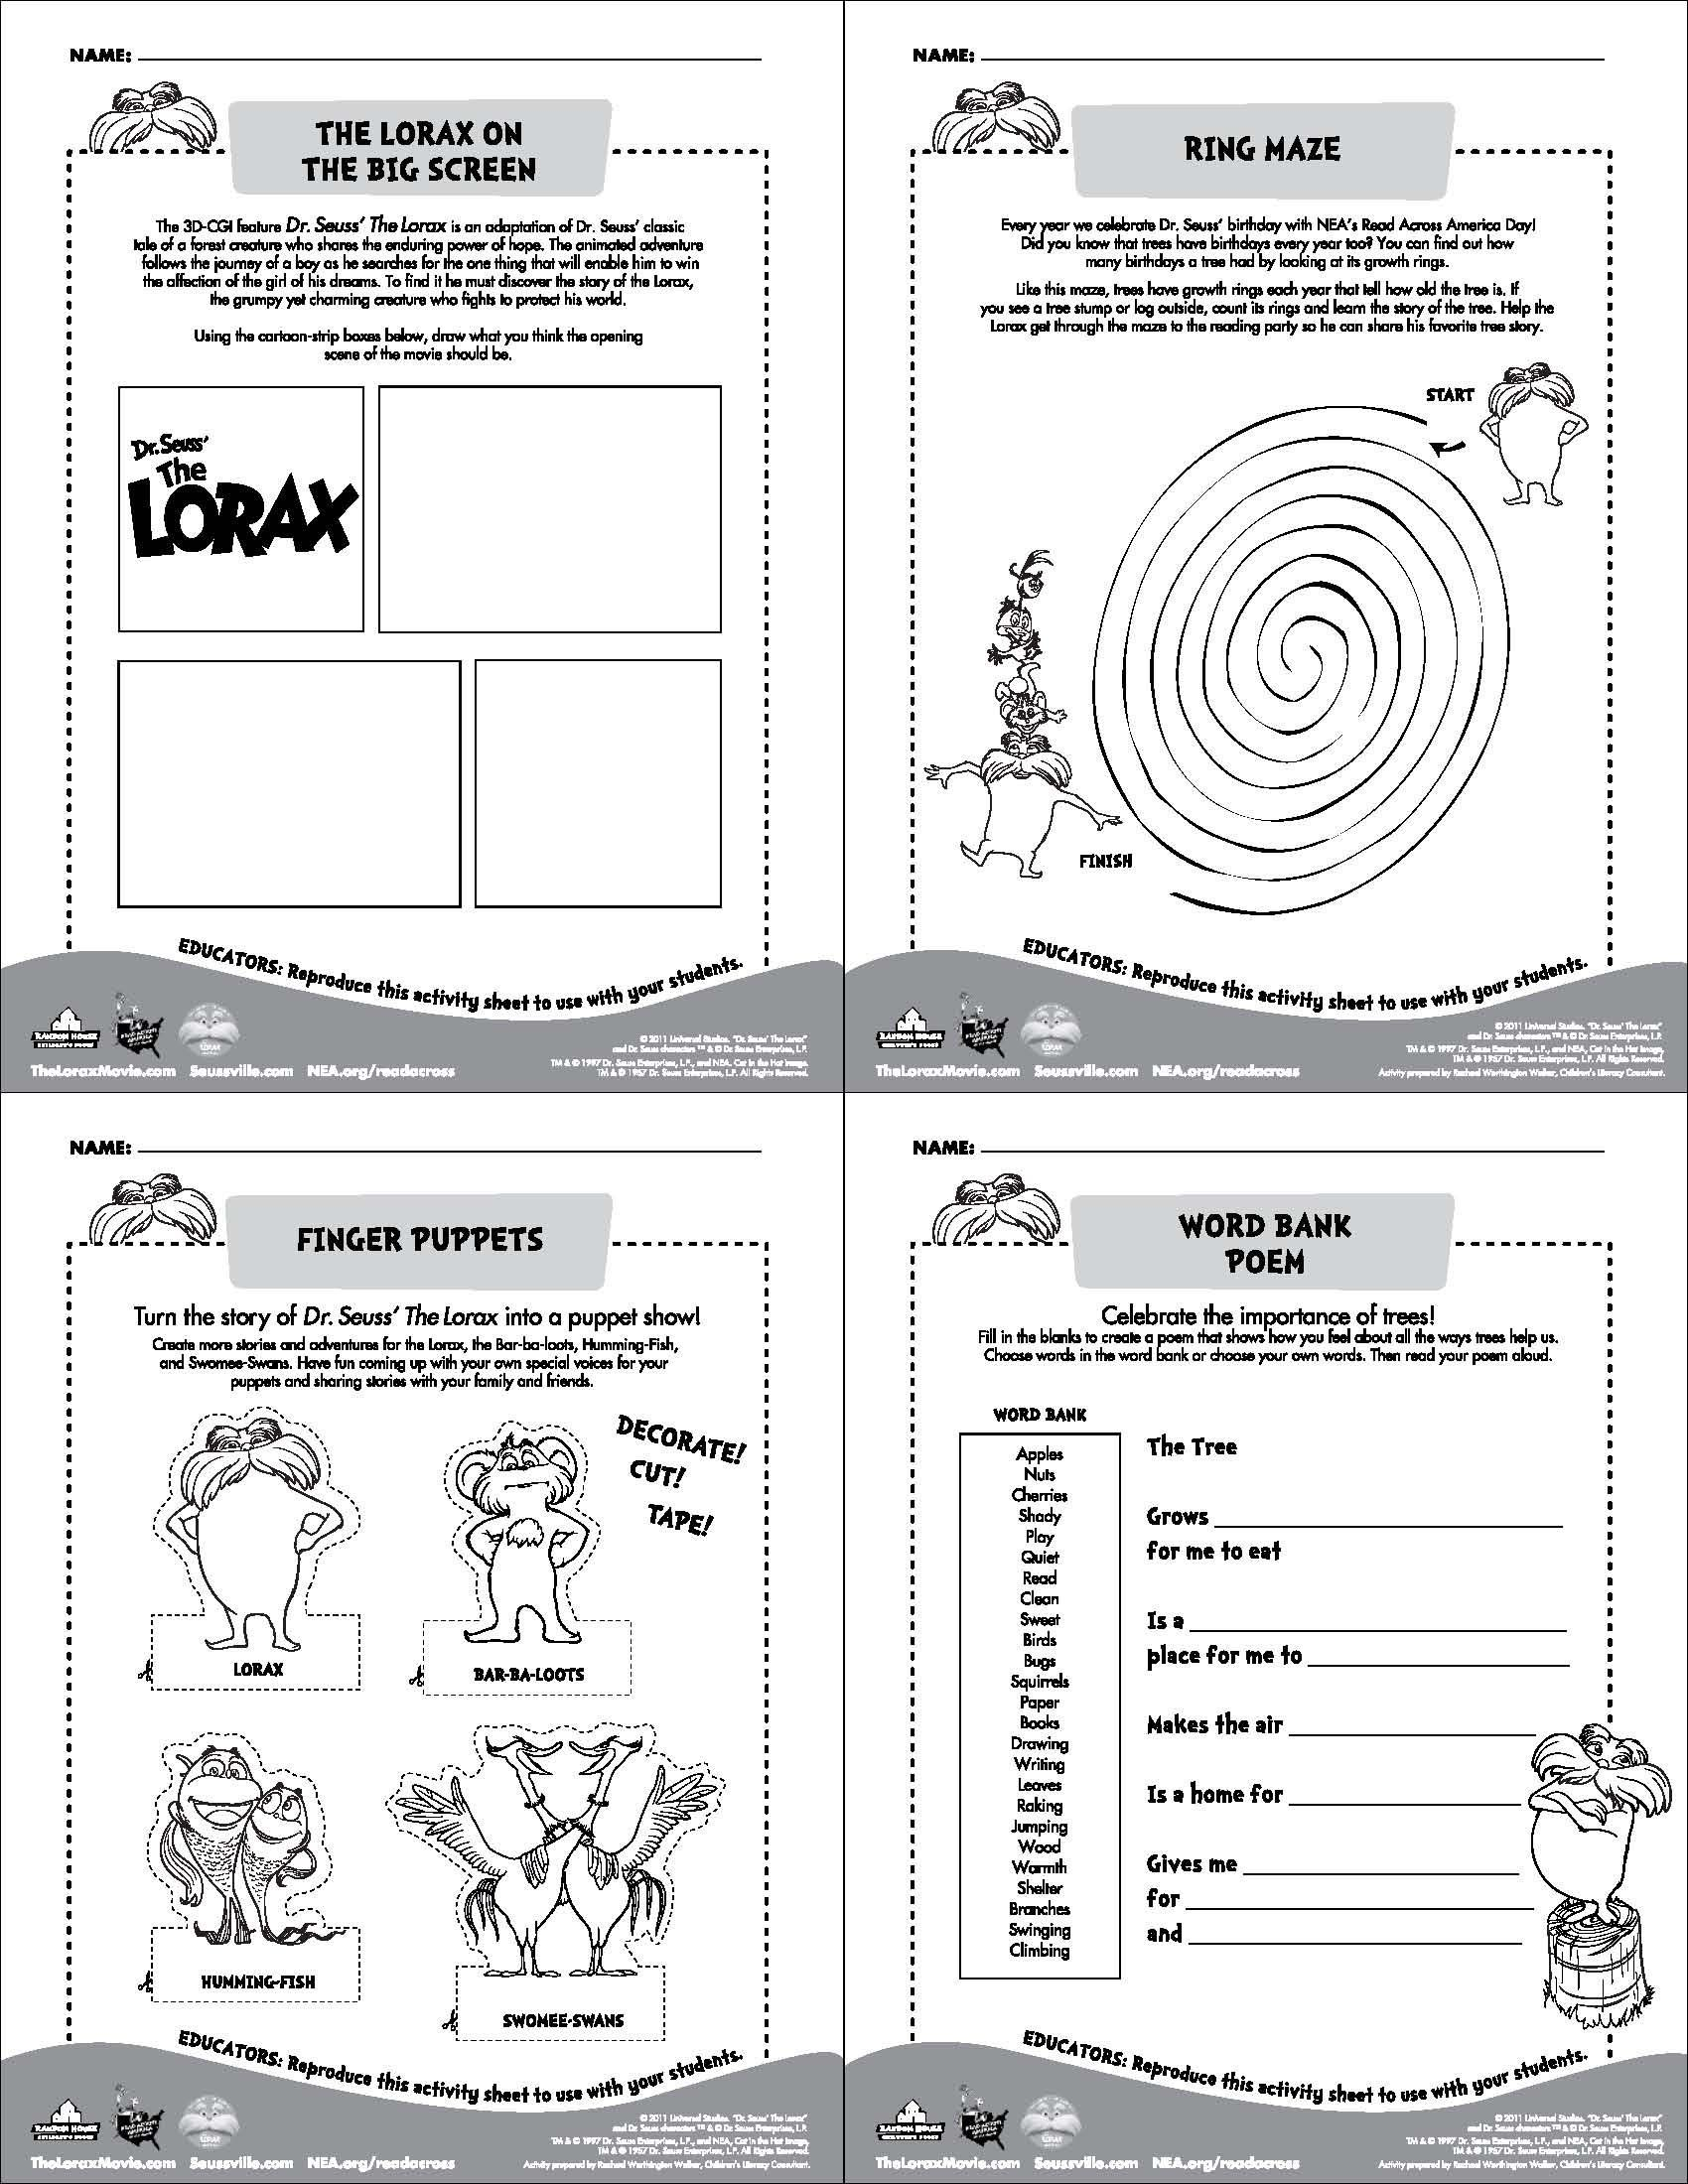 free read across america downloads from nea dr seuss pinterest free reading. Black Bedroom Furniture Sets. Home Design Ideas